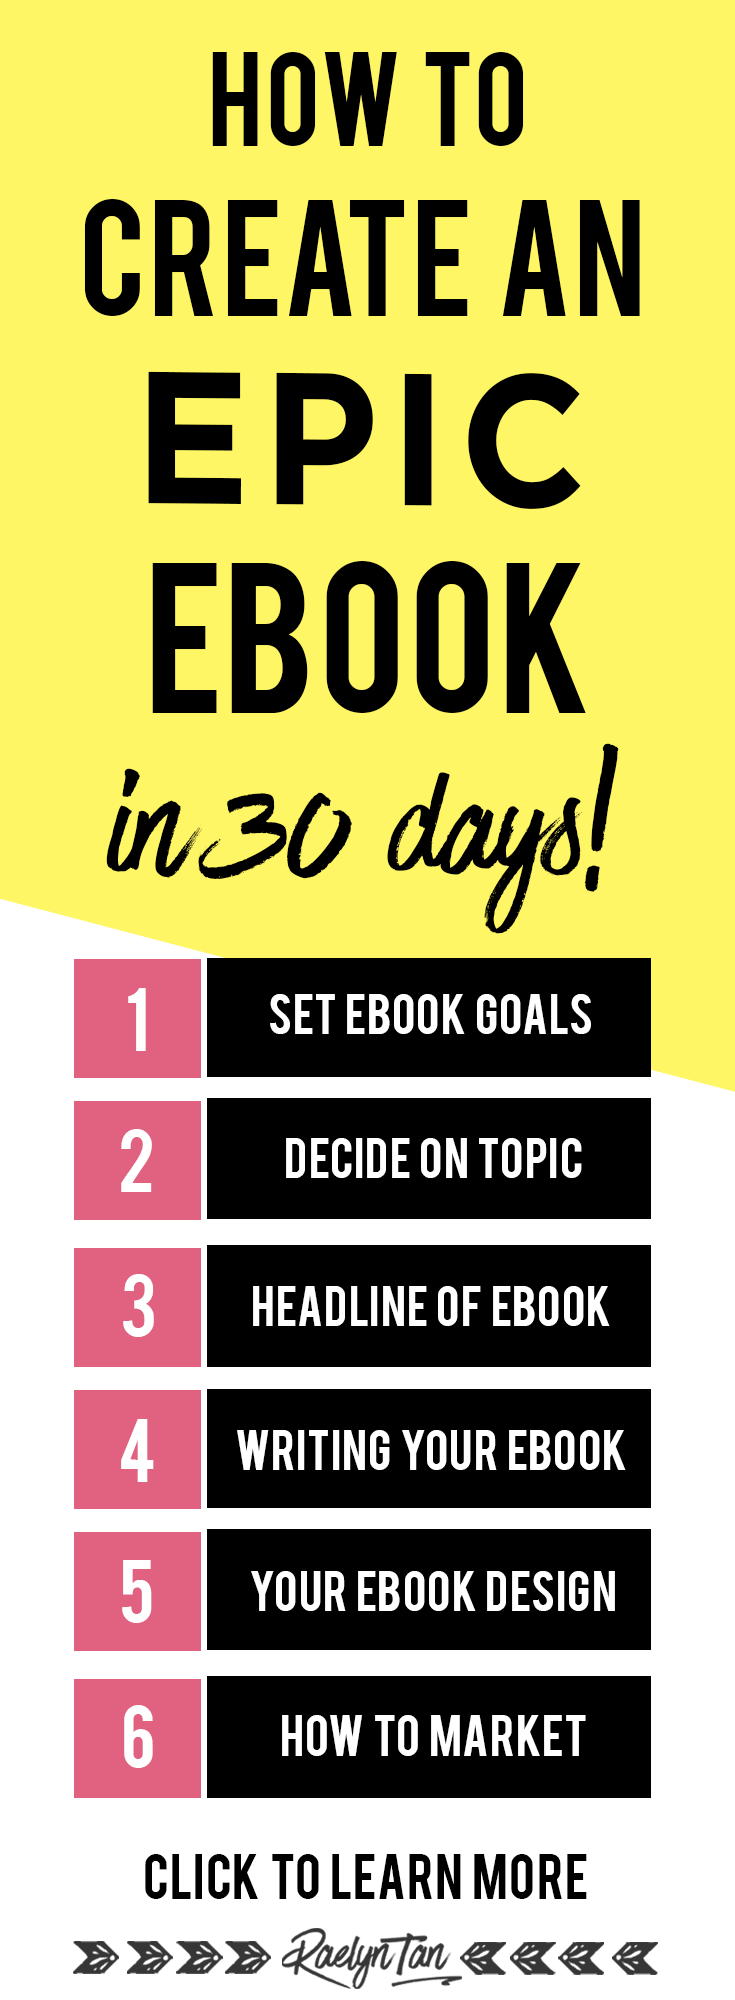 How To Write An Epic Ebook In 30 Days (stepbystep)